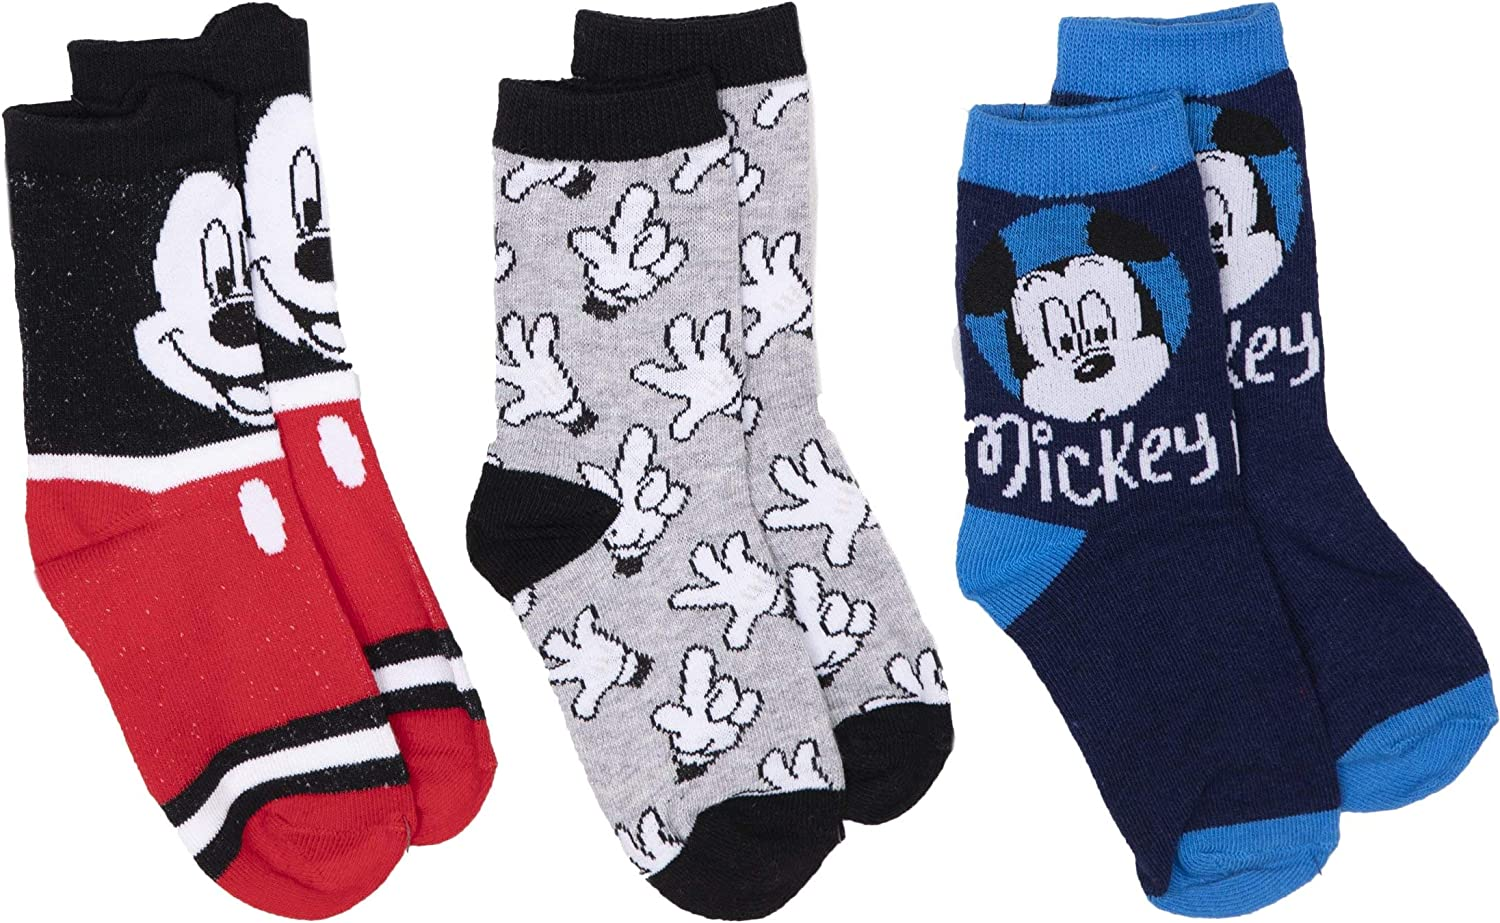 Official Disney Mickey Mouse Licensed Boys Crew Calf Trainer Sport Socks Set 3-Pack 70/% Cotton Rich Sizes from 6 Child